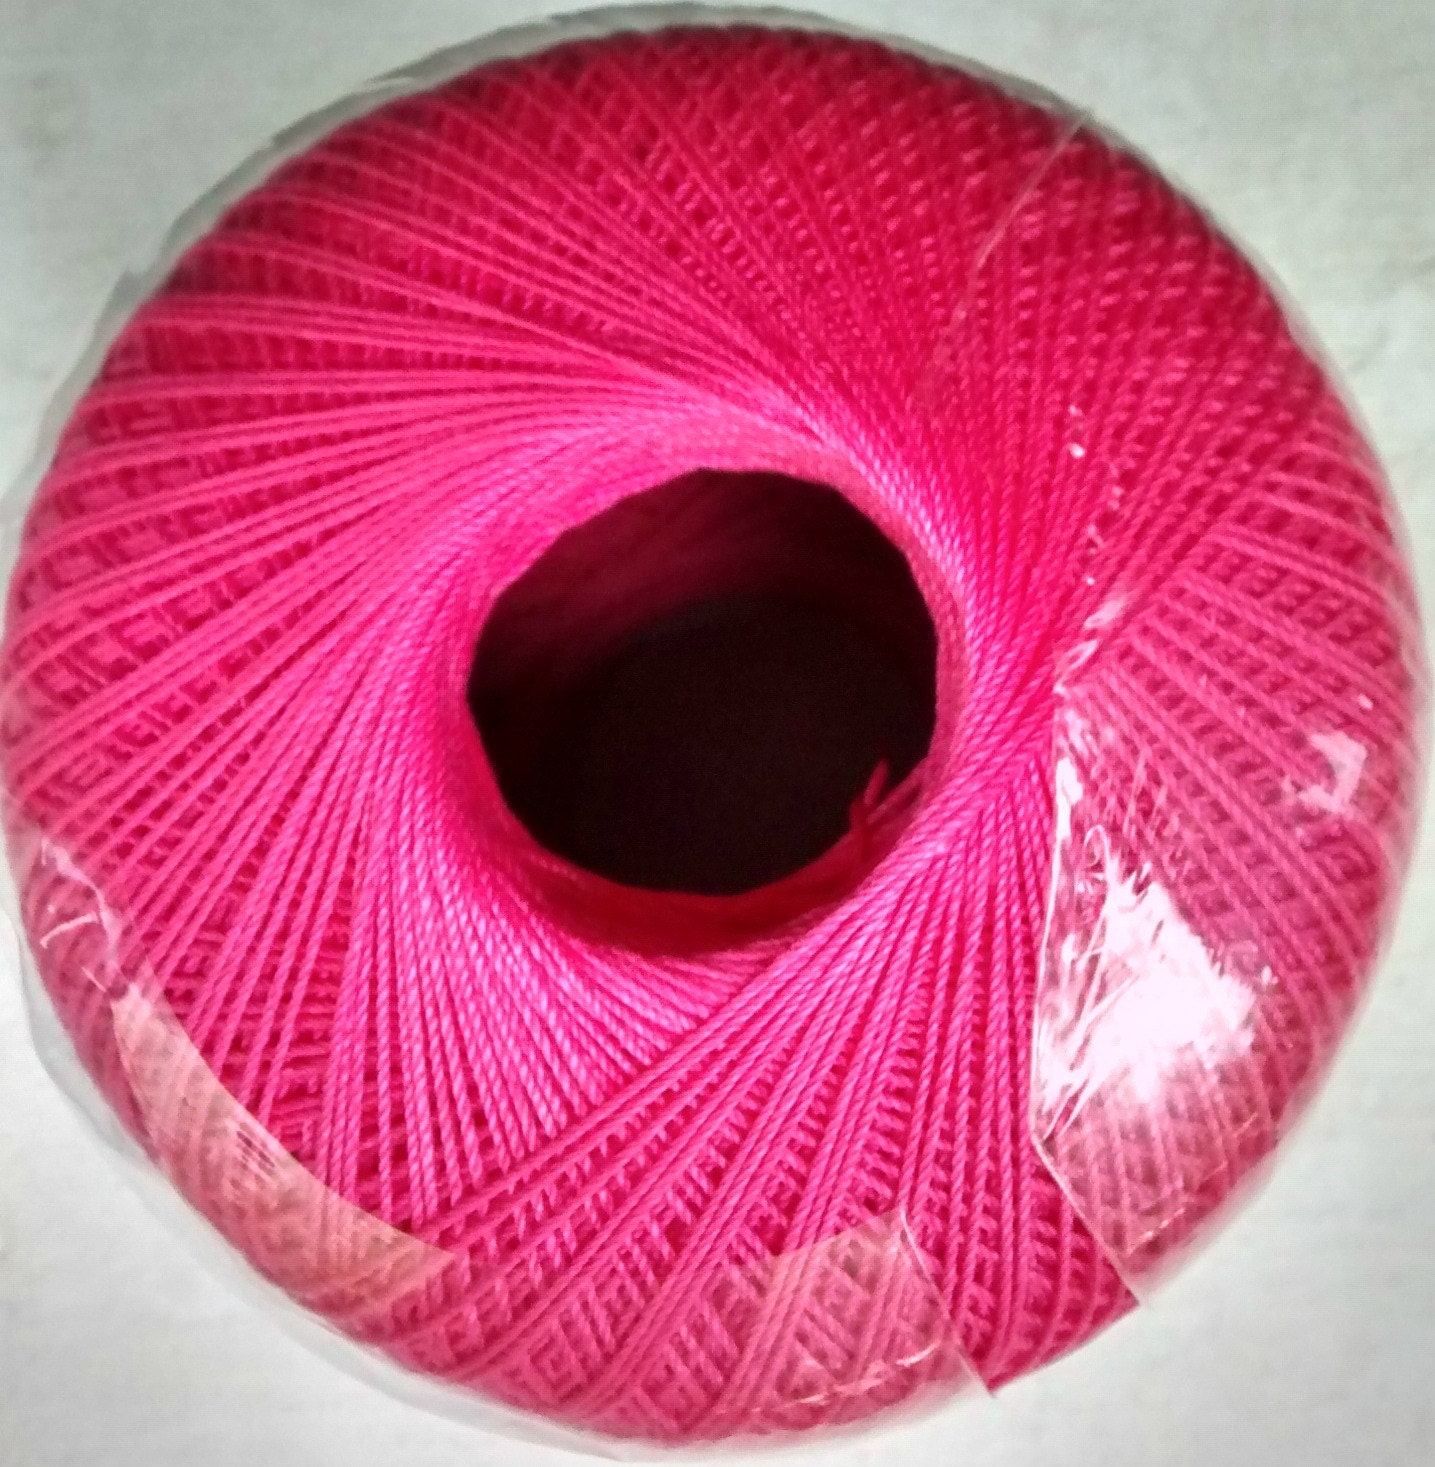 Aunt Lydias Crochet Thread Size 10 Hot PInk by CalmingStitches